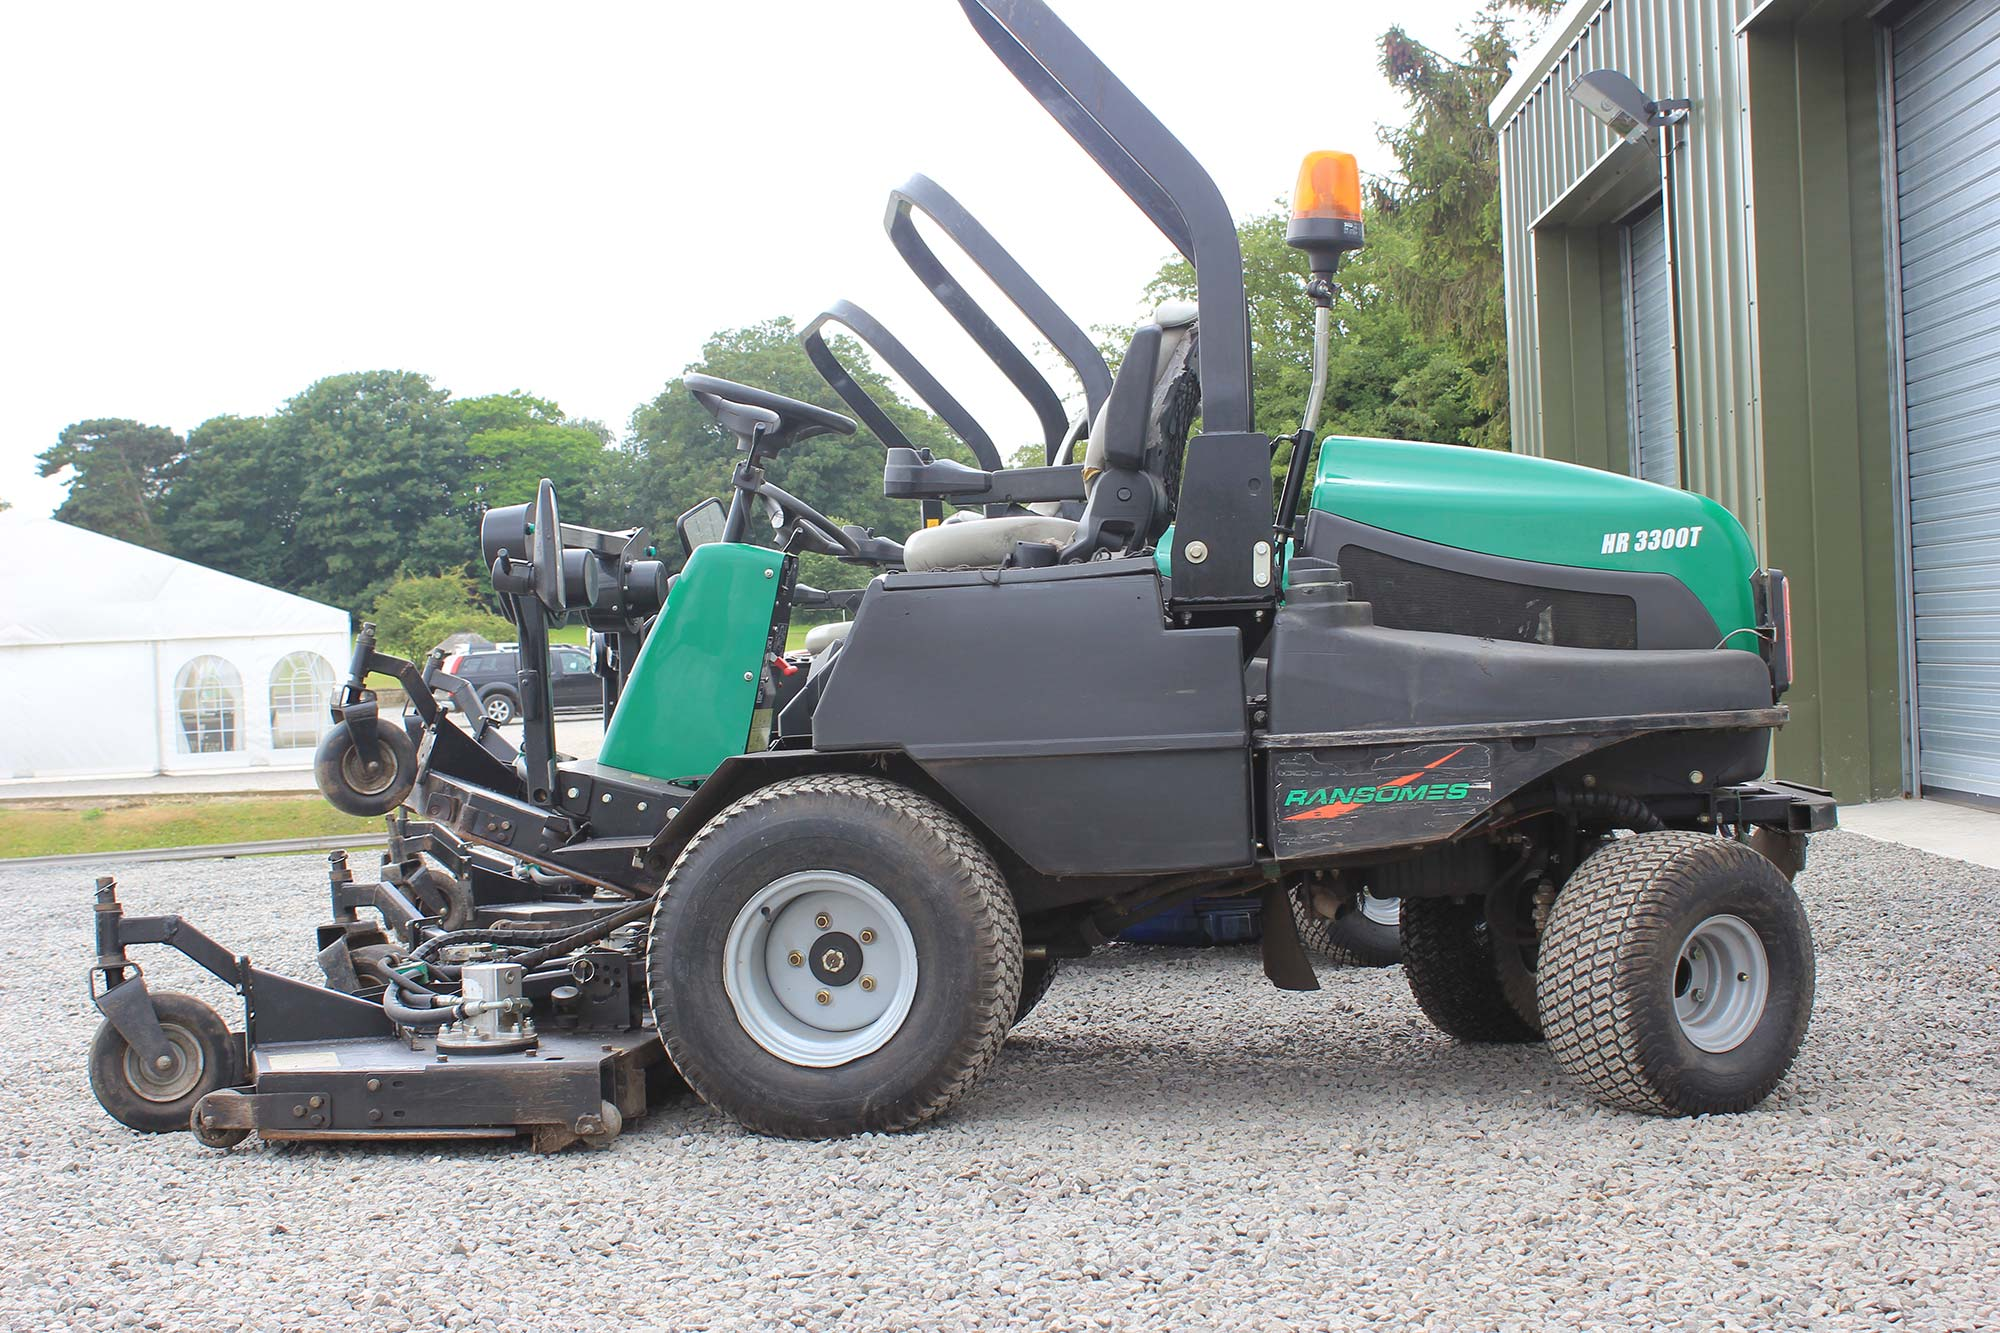 Ransomes HR 3300T